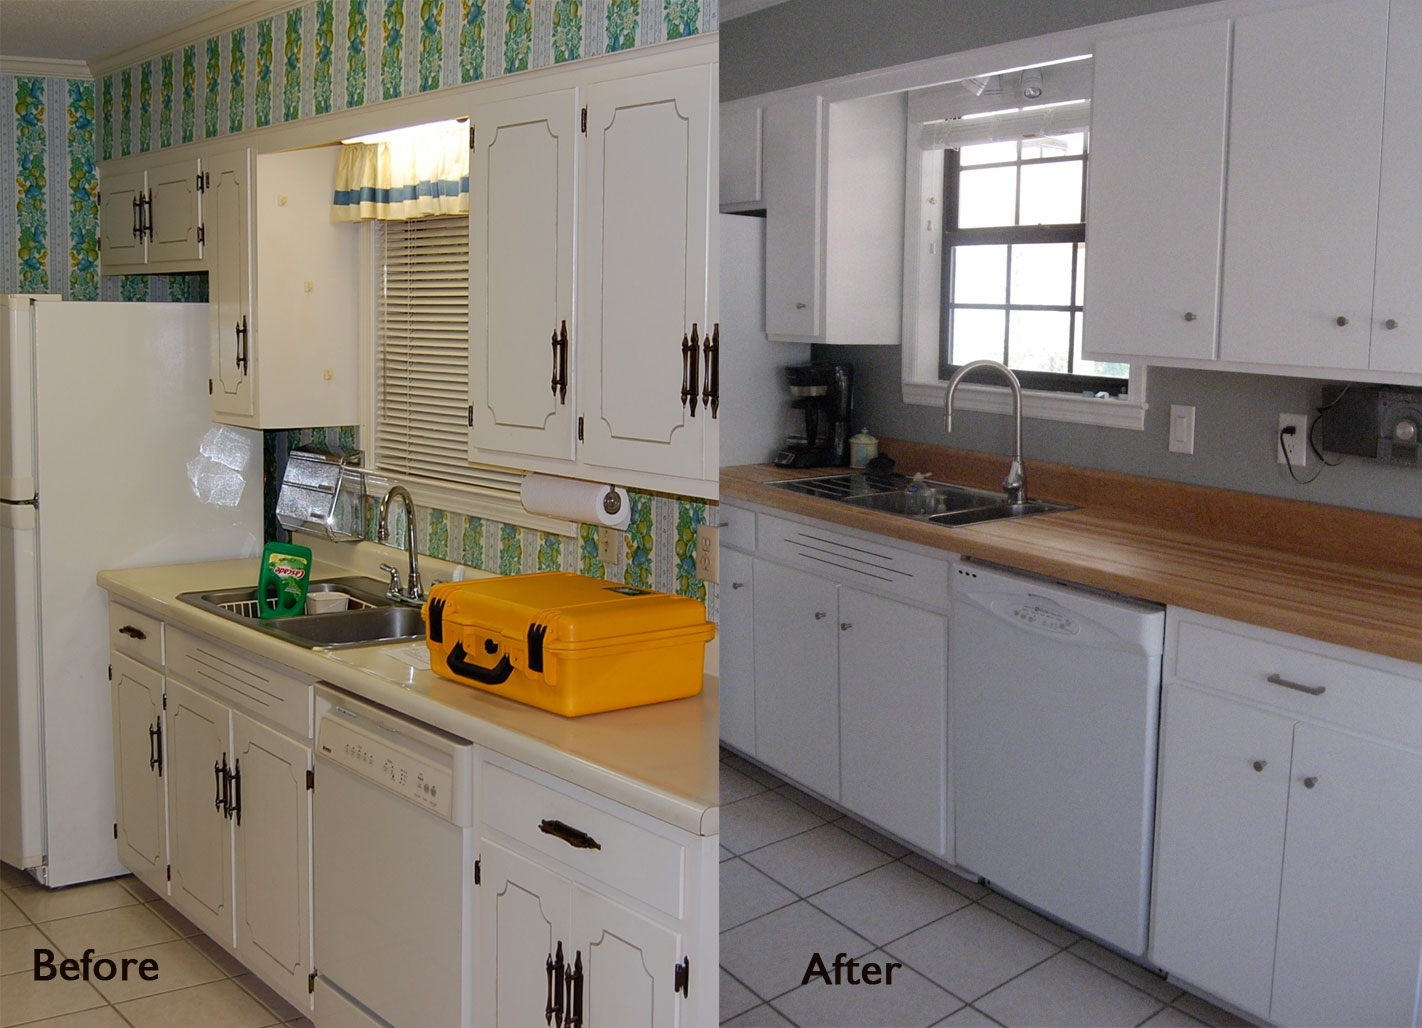 Kitchen Facelift Before And After How Much Does It Cost To Remodel A Small Taylor Custom Furniture